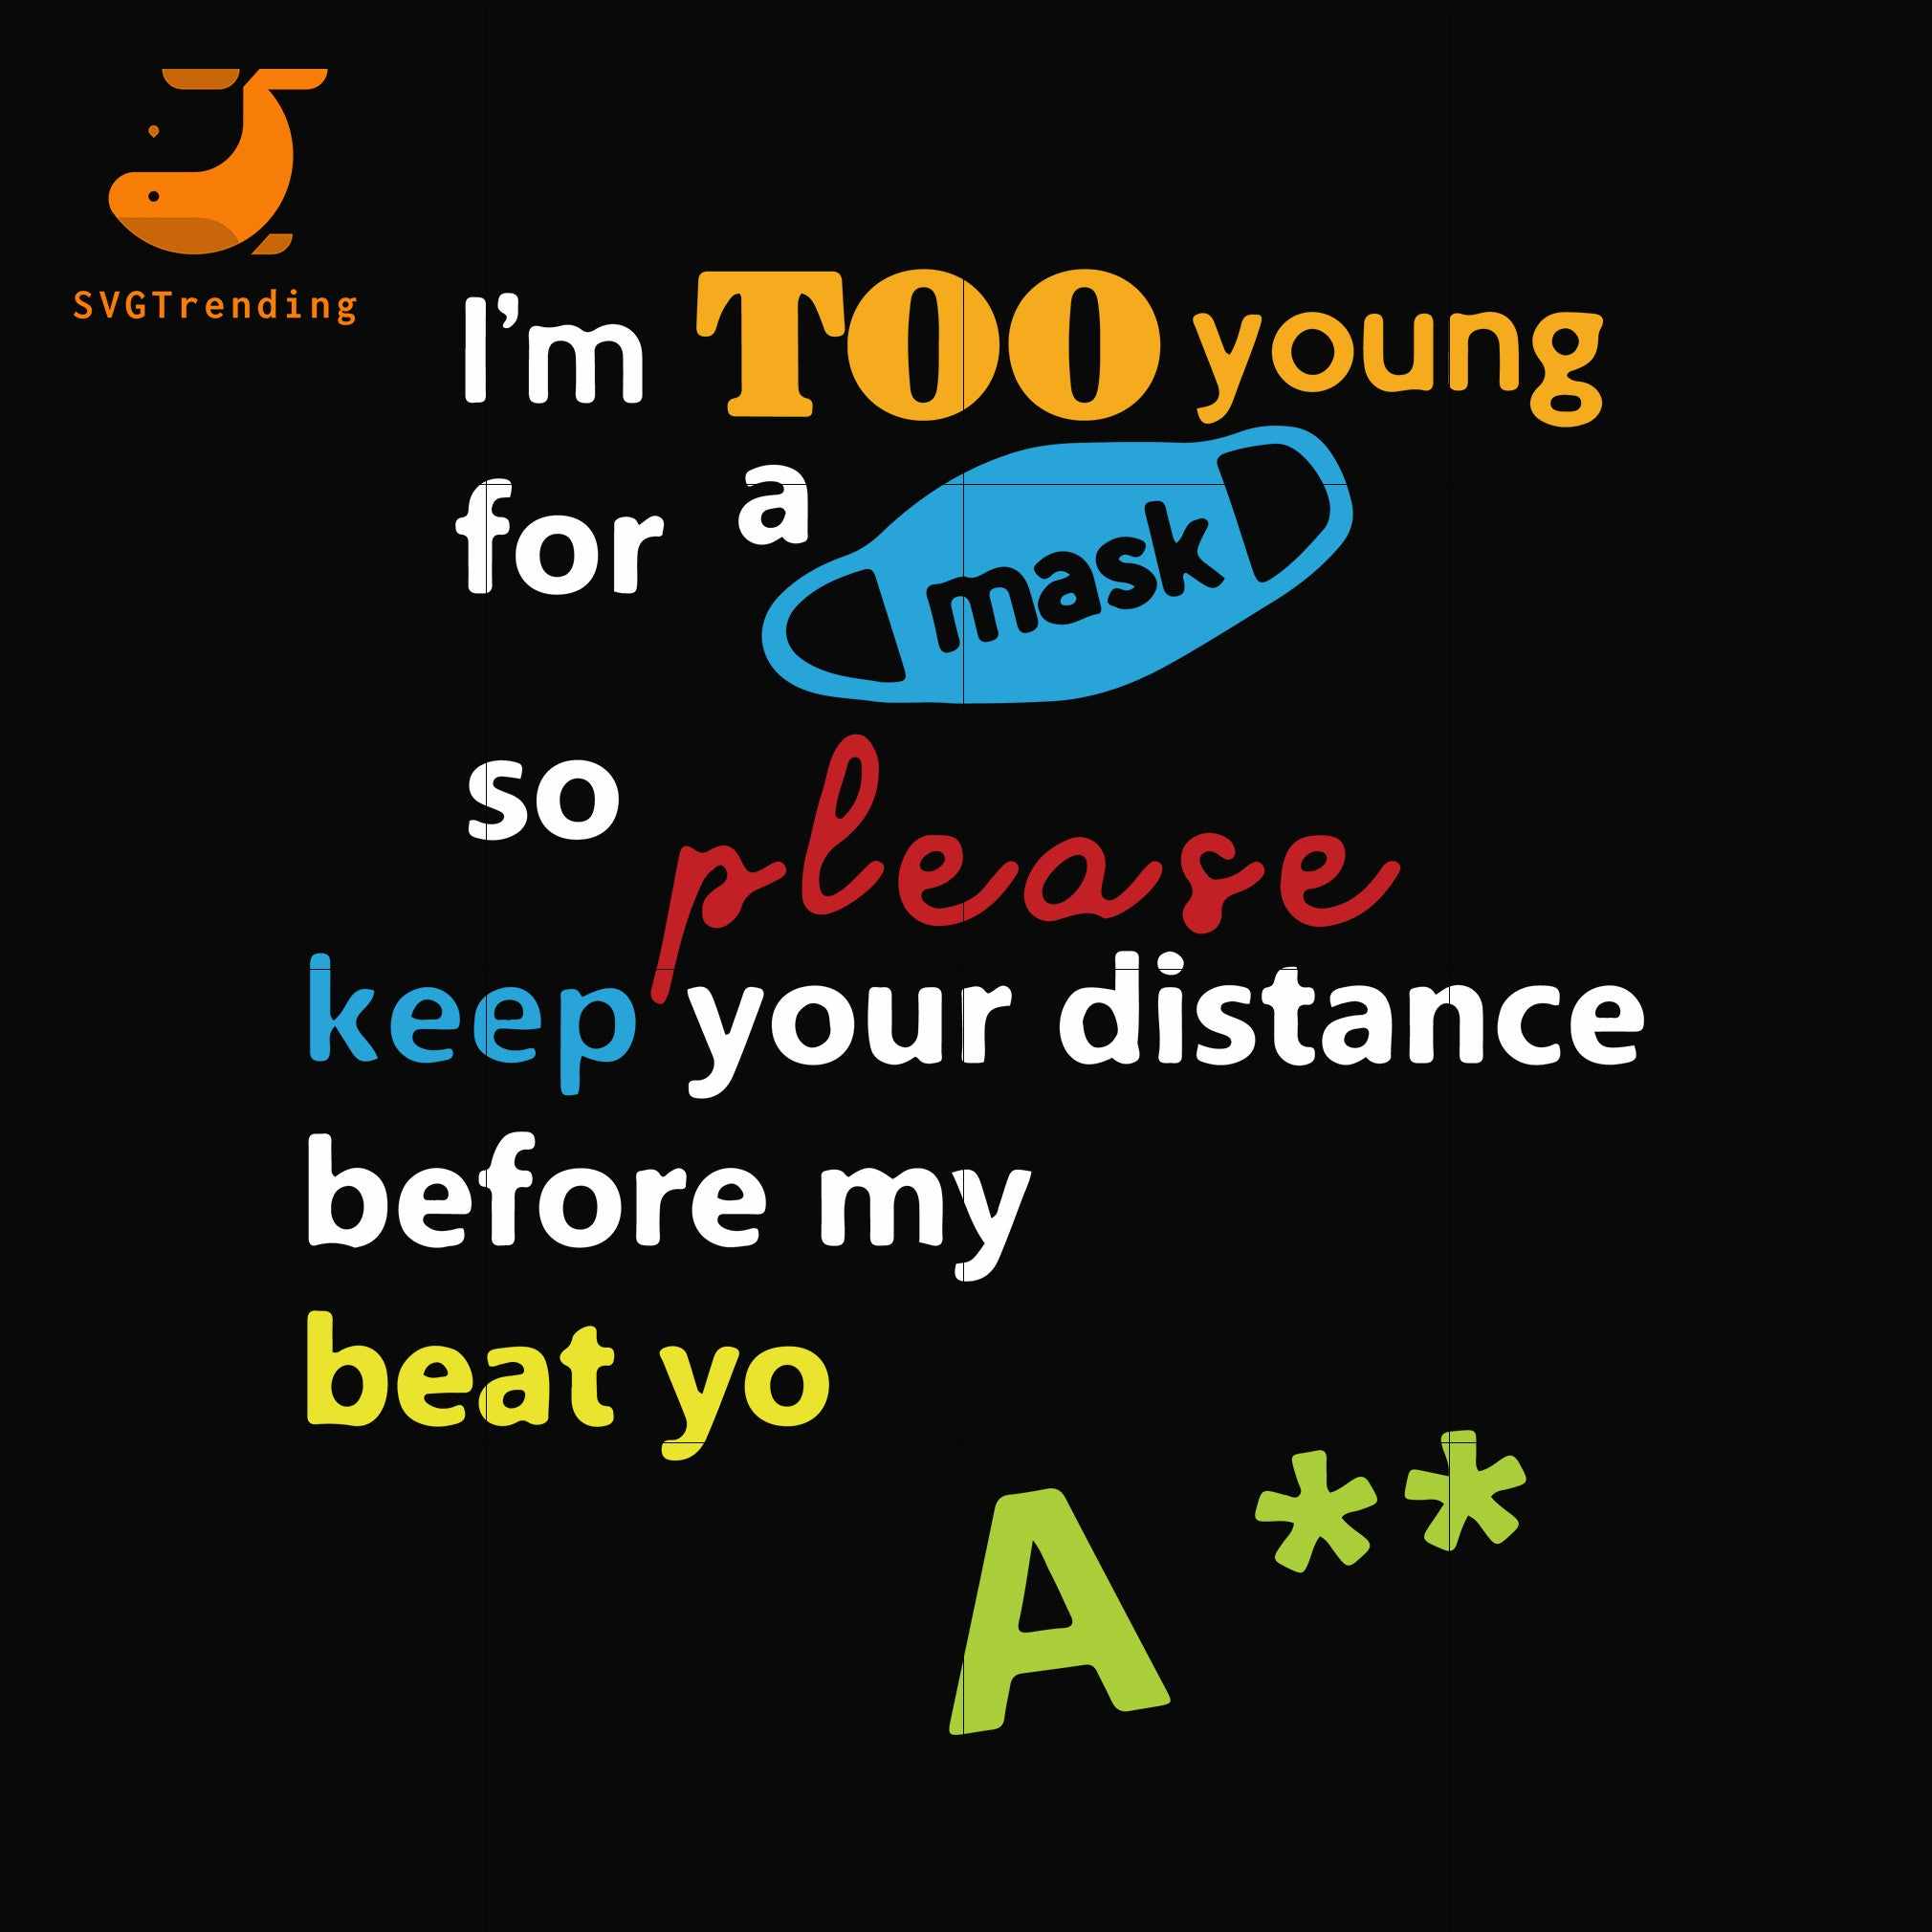 I'm to young for a mark svg, png, dxf, eps digital file TD114